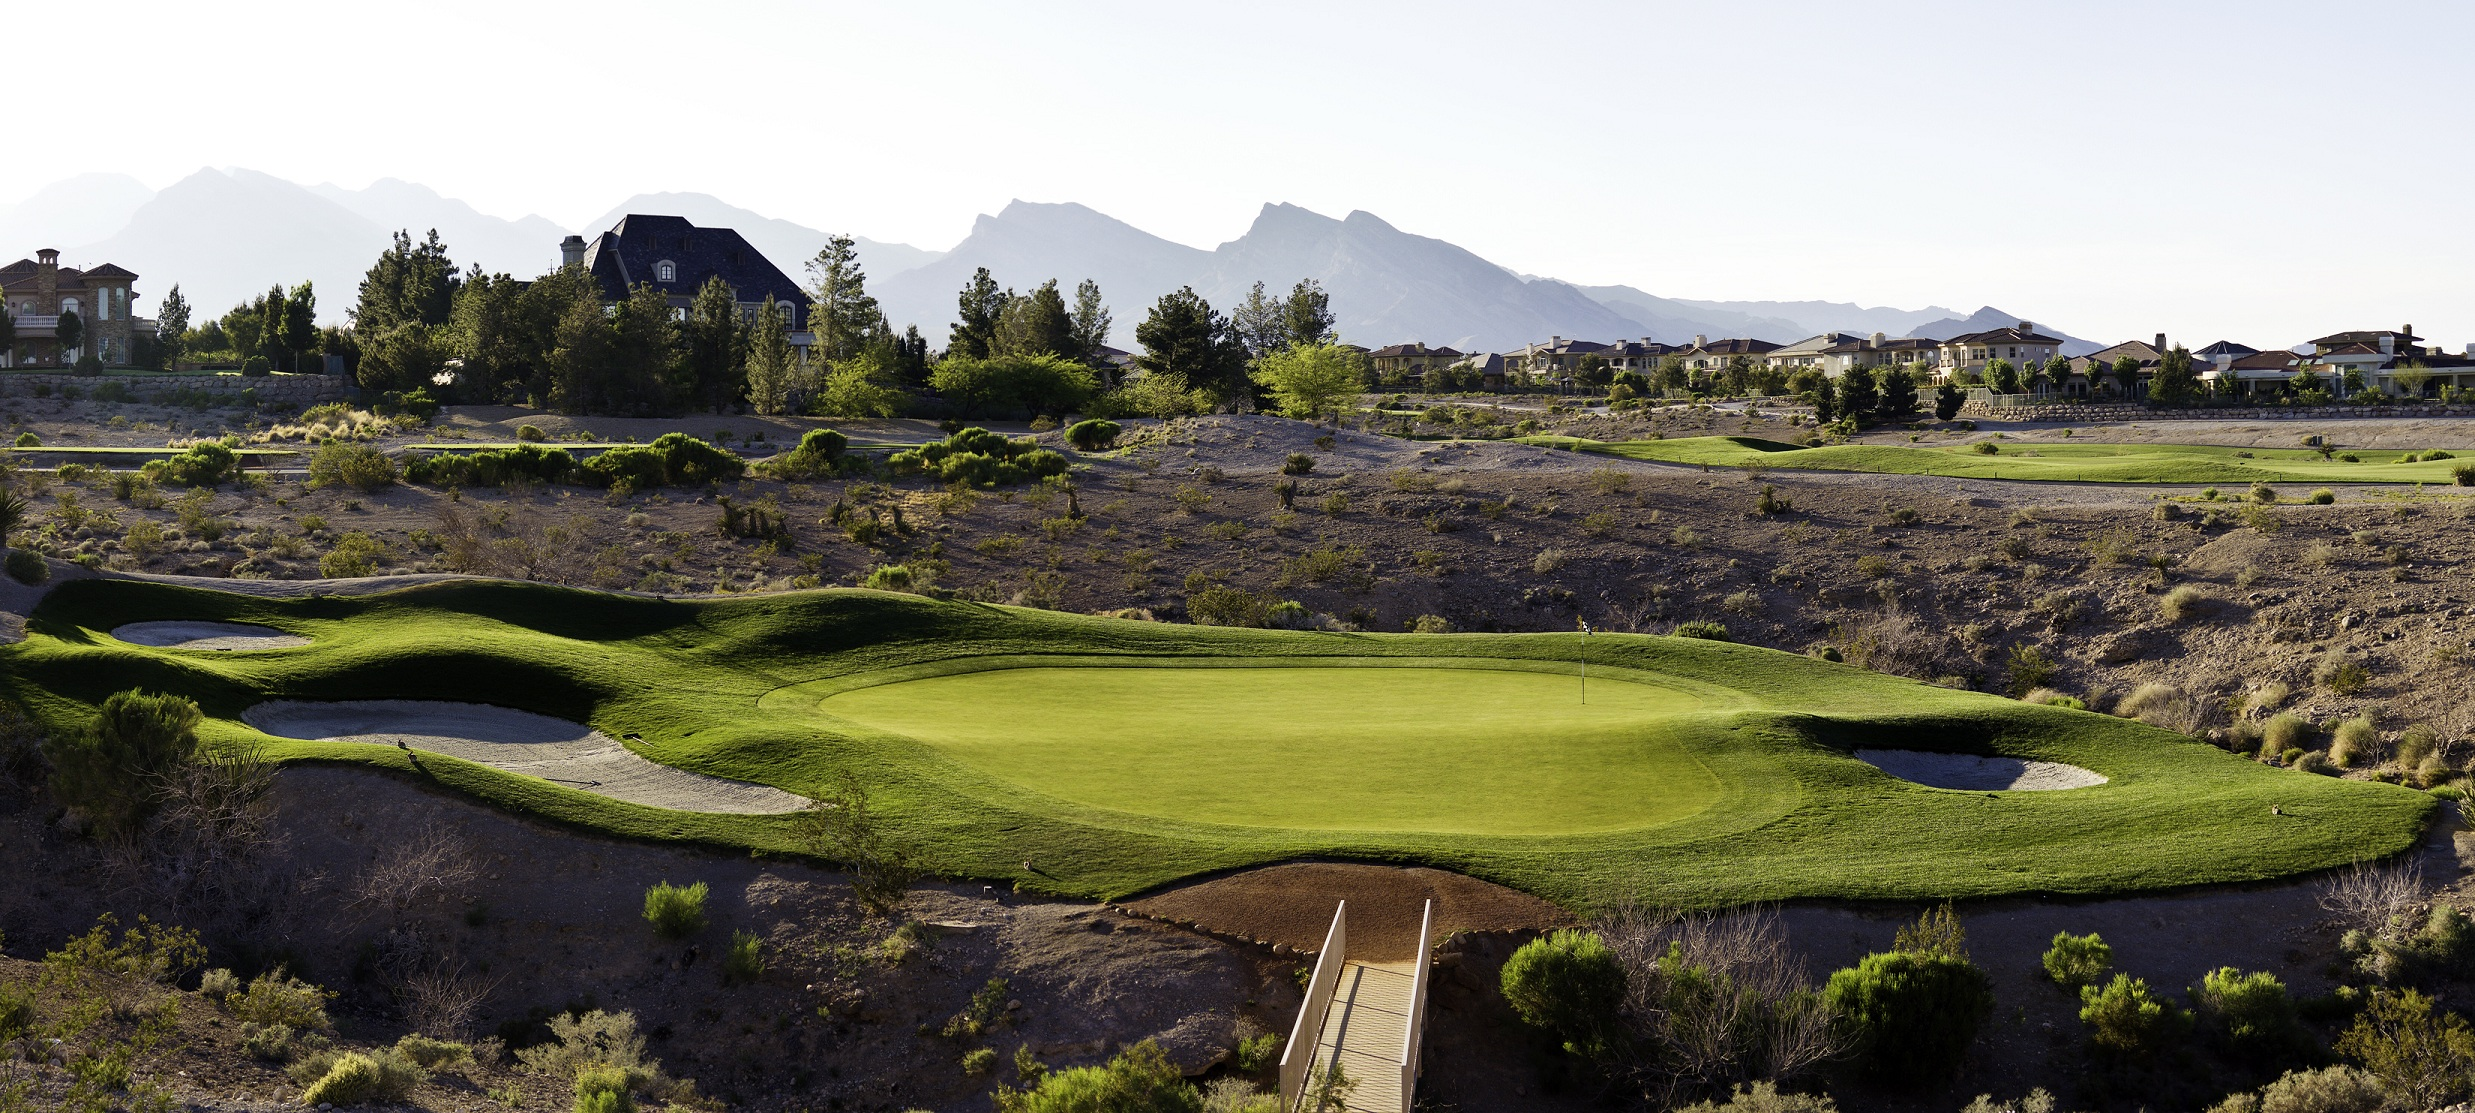 Are you bad enough to take on the Badlands Golf Course?